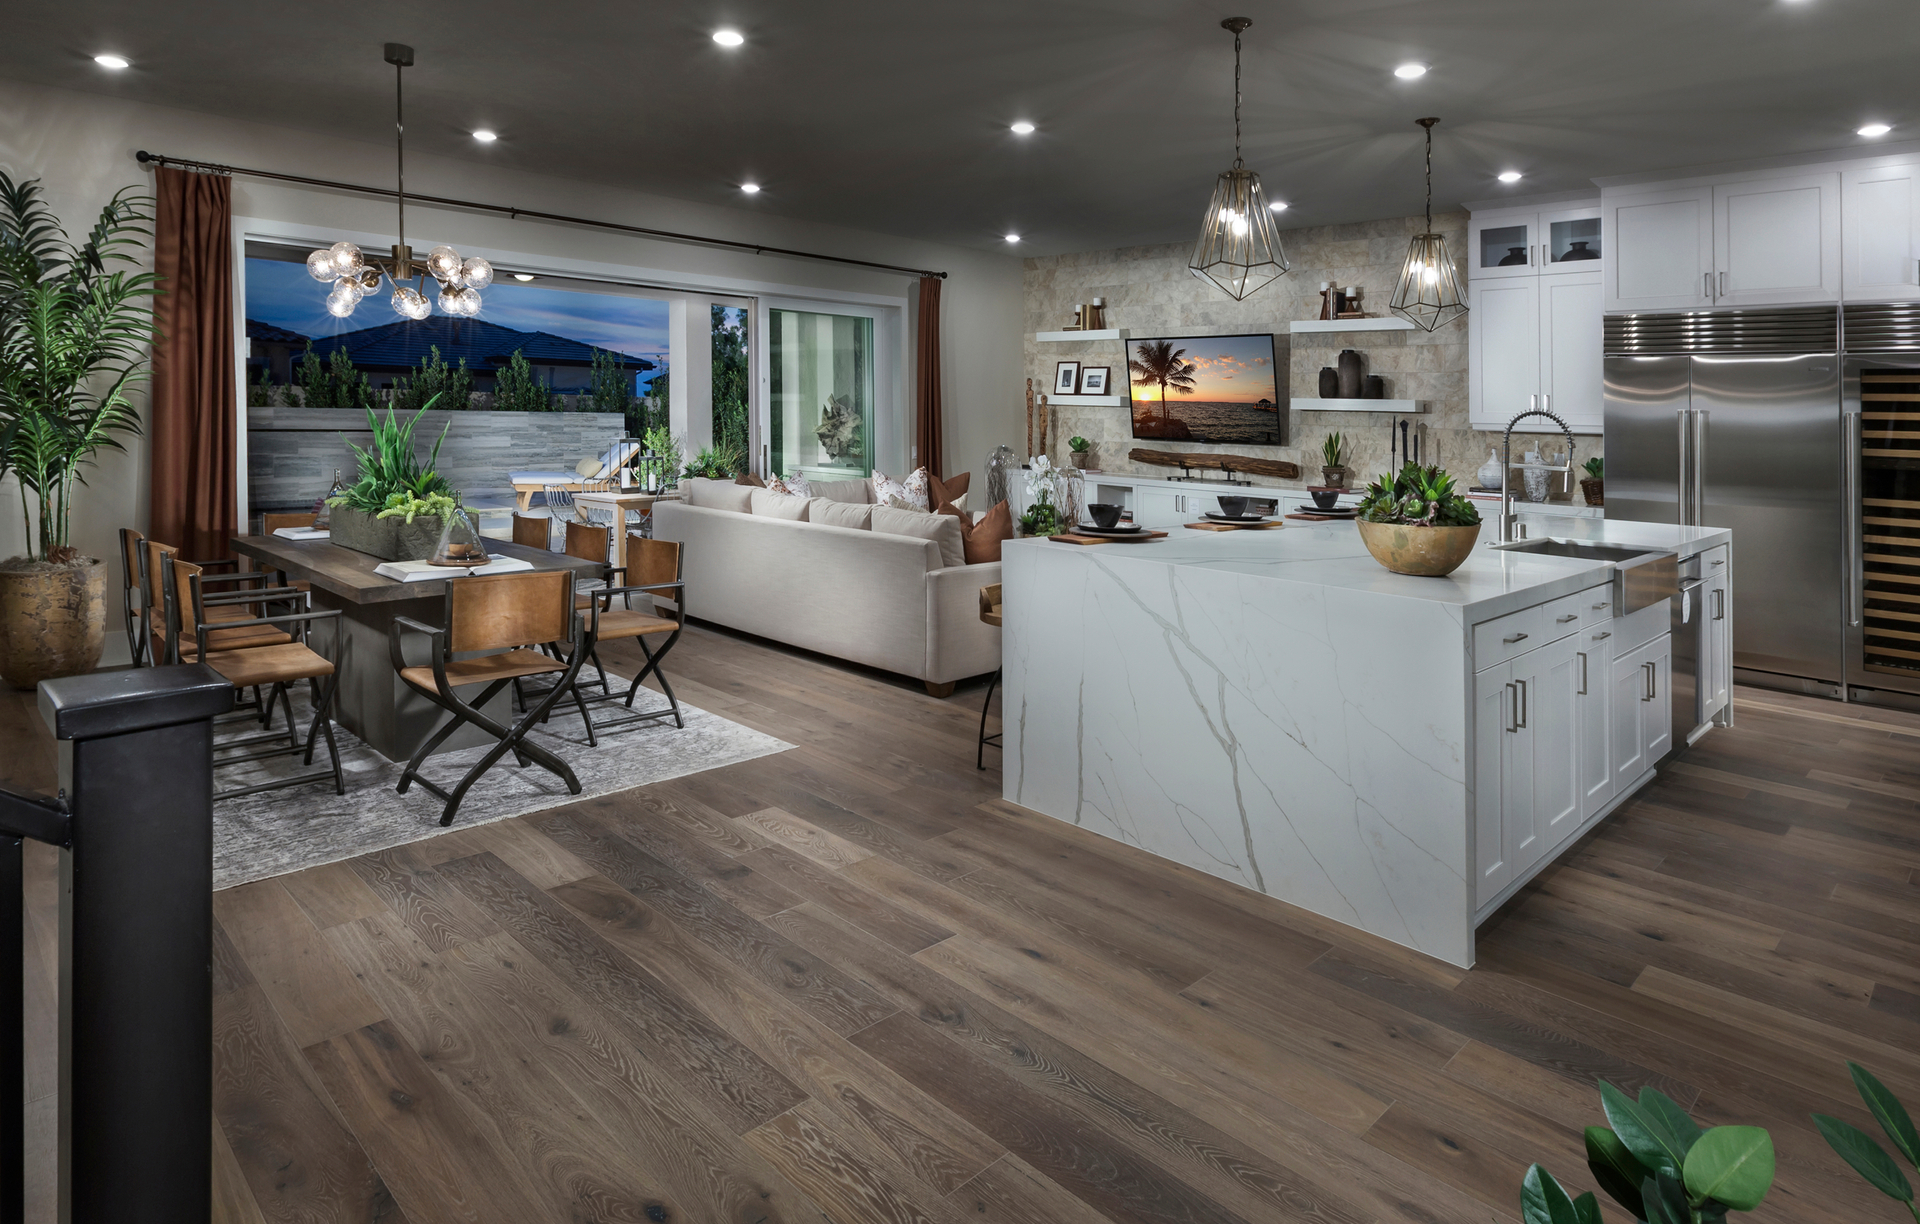 A waterfall countertop can easily become the statement piece of your kitchen, without overwhelming the space. What do you think of this trend: